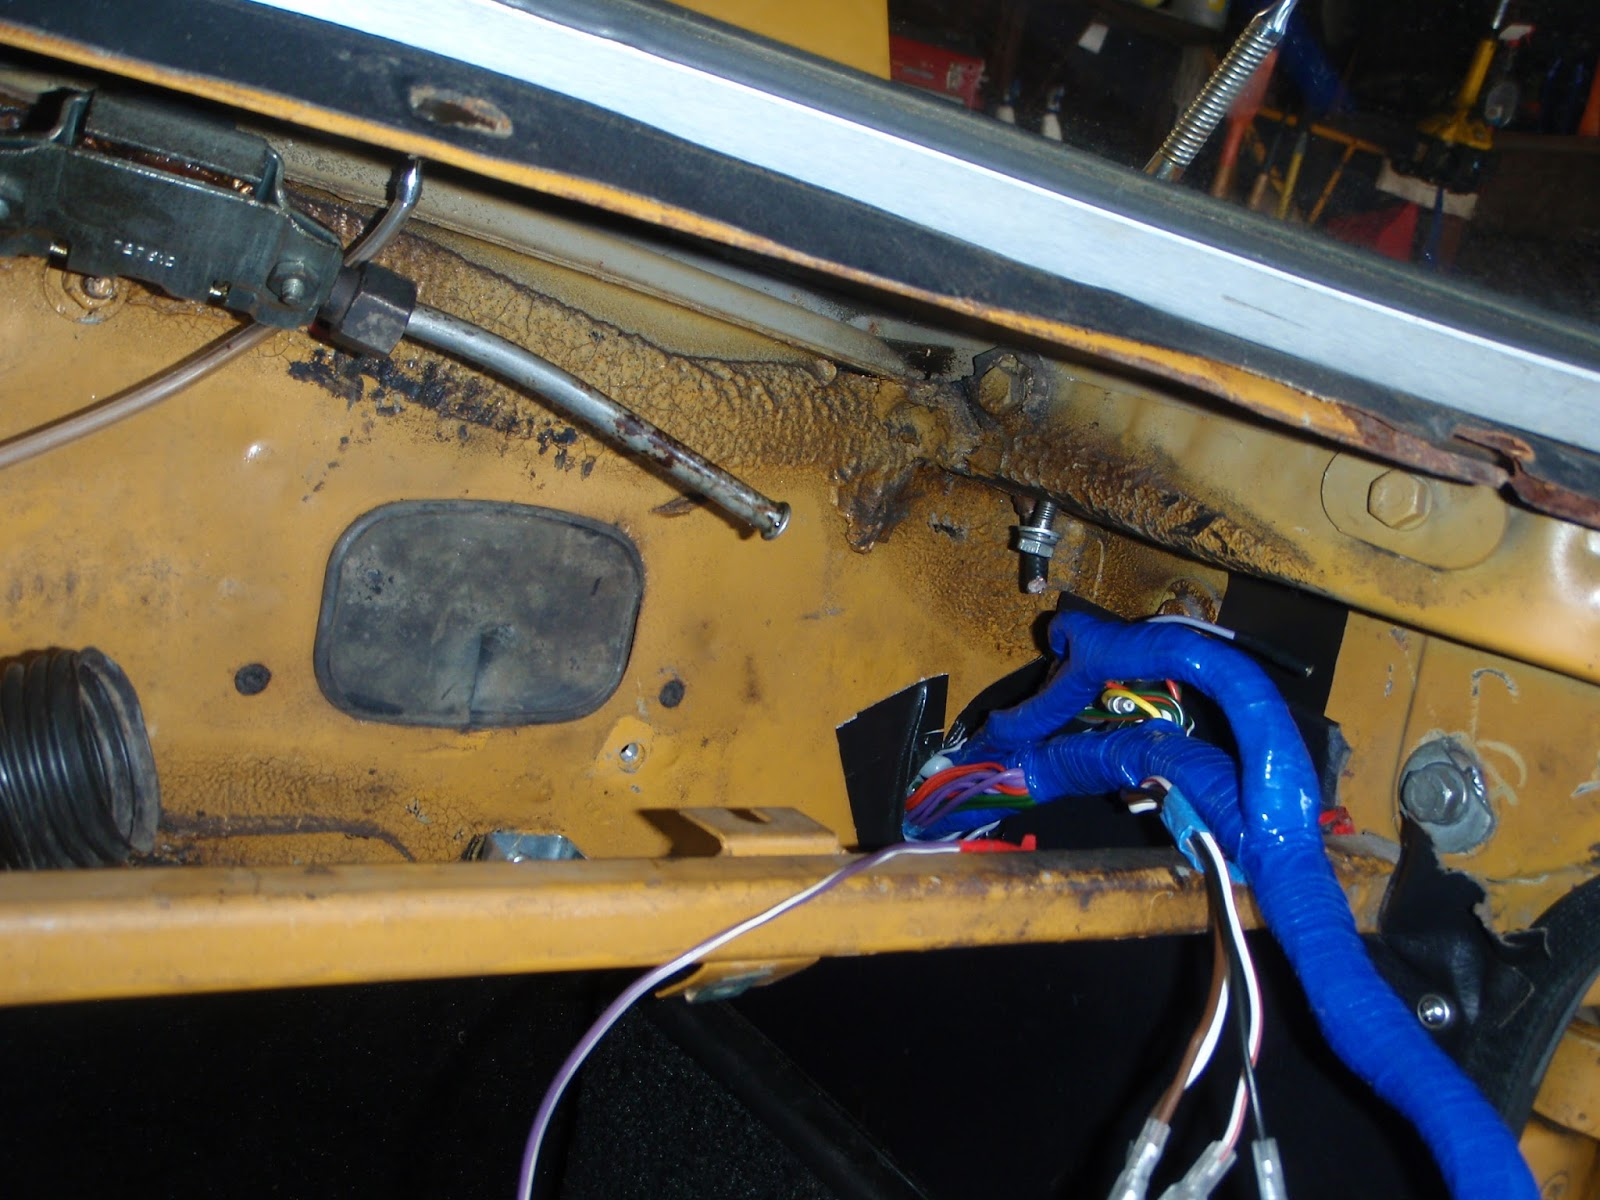 Mgb wiring harness tape trusted wiring diagrams mgb in the garage new wiring harness vinyl top alternator etc rh mgb in the garage blogspot com 1975 mgb wiring diagram 1975 mgb wiring diagram publicscrutiny Image collections